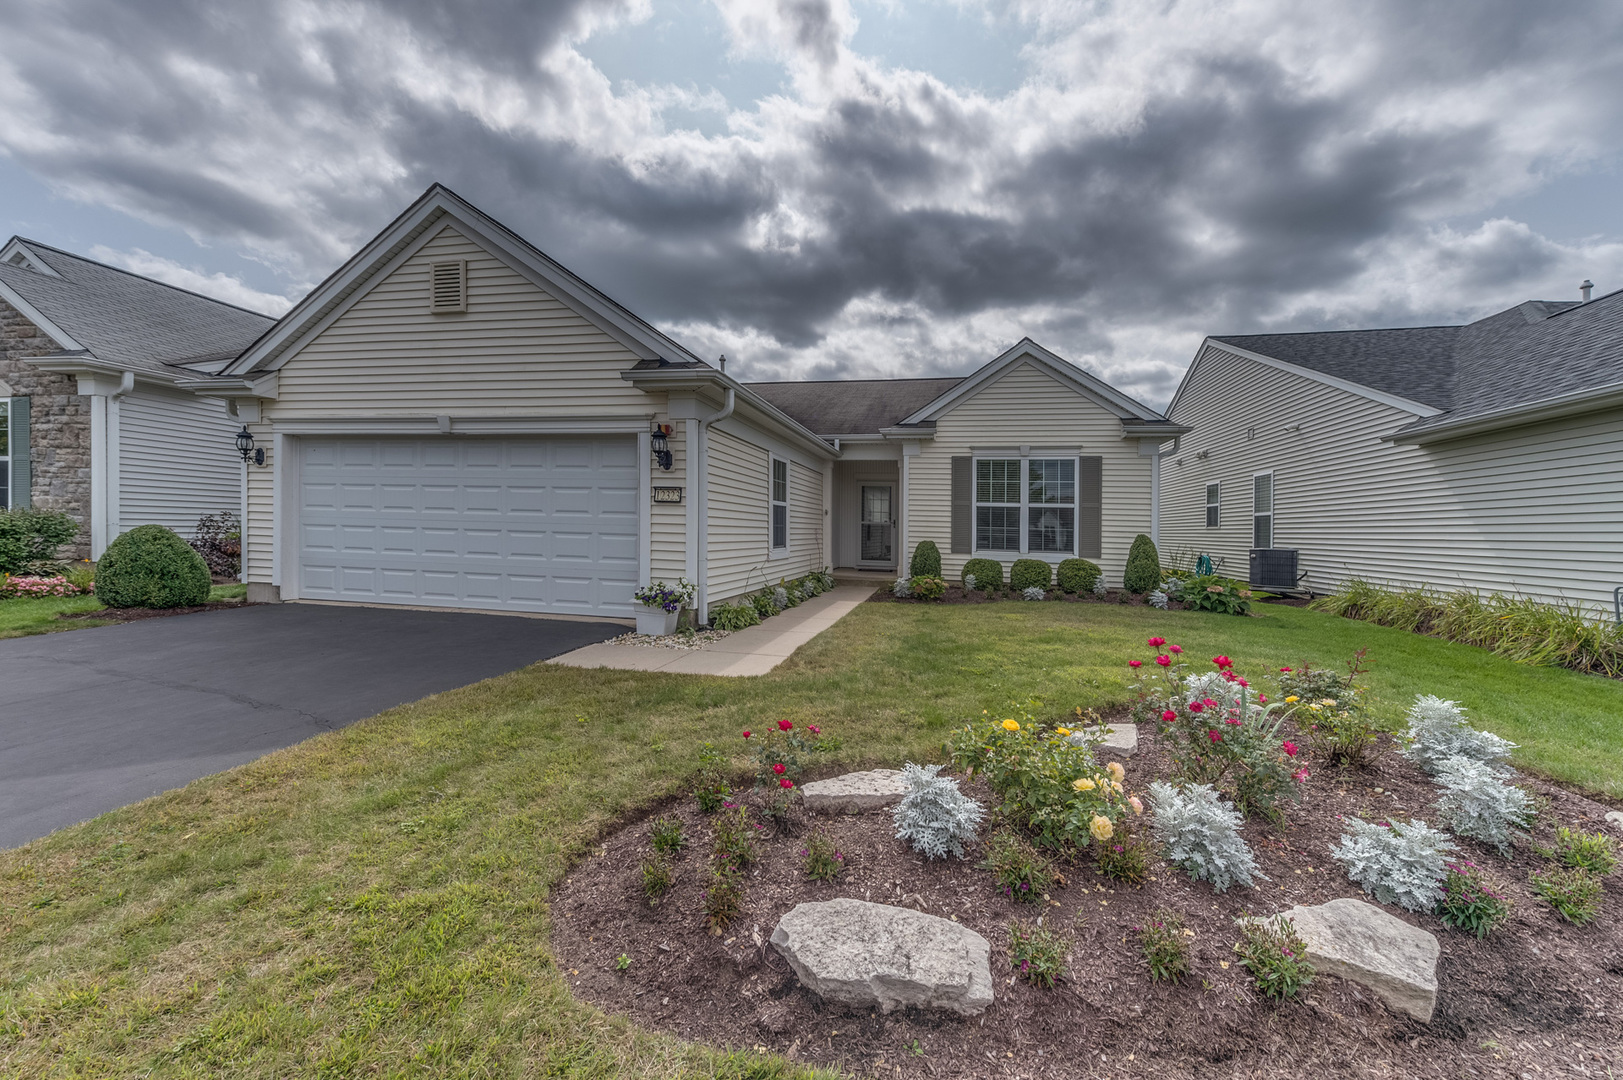 Photo for 12323 Scarlet Drive, Huntley, IL 60142 (MLS # 10876654)